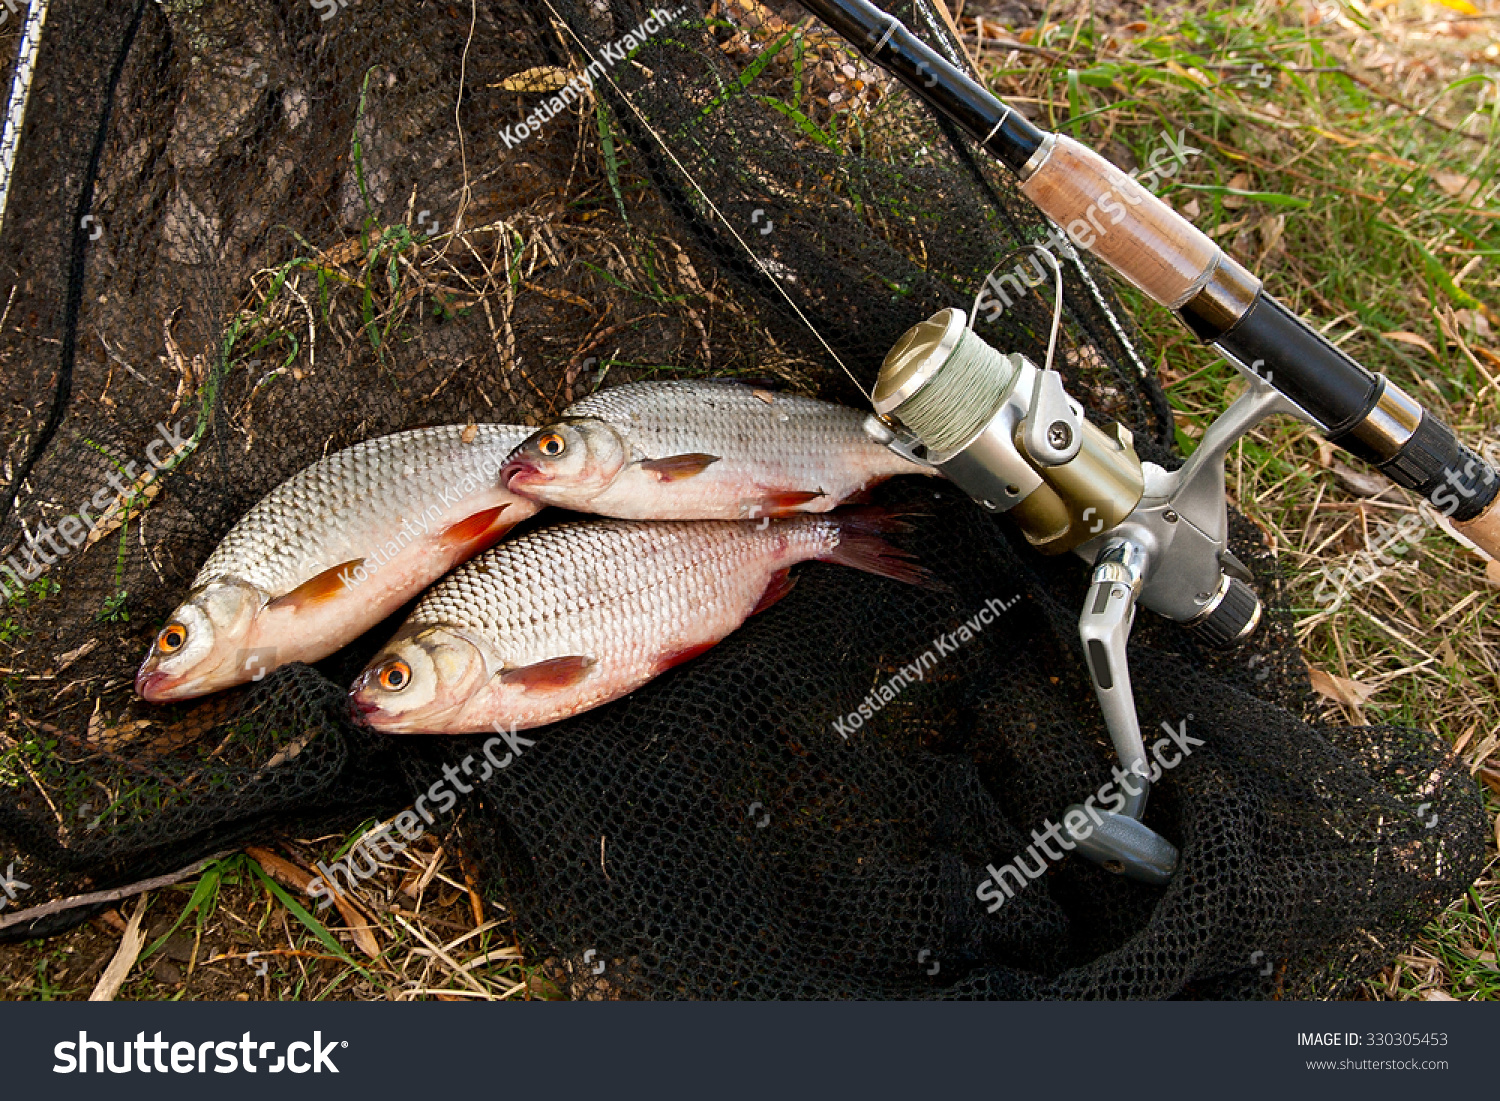 Freshwater fish bream - Roach Fish And Bream Freshwater Fish Just Taken From The Water Catching Freshwater Fish And